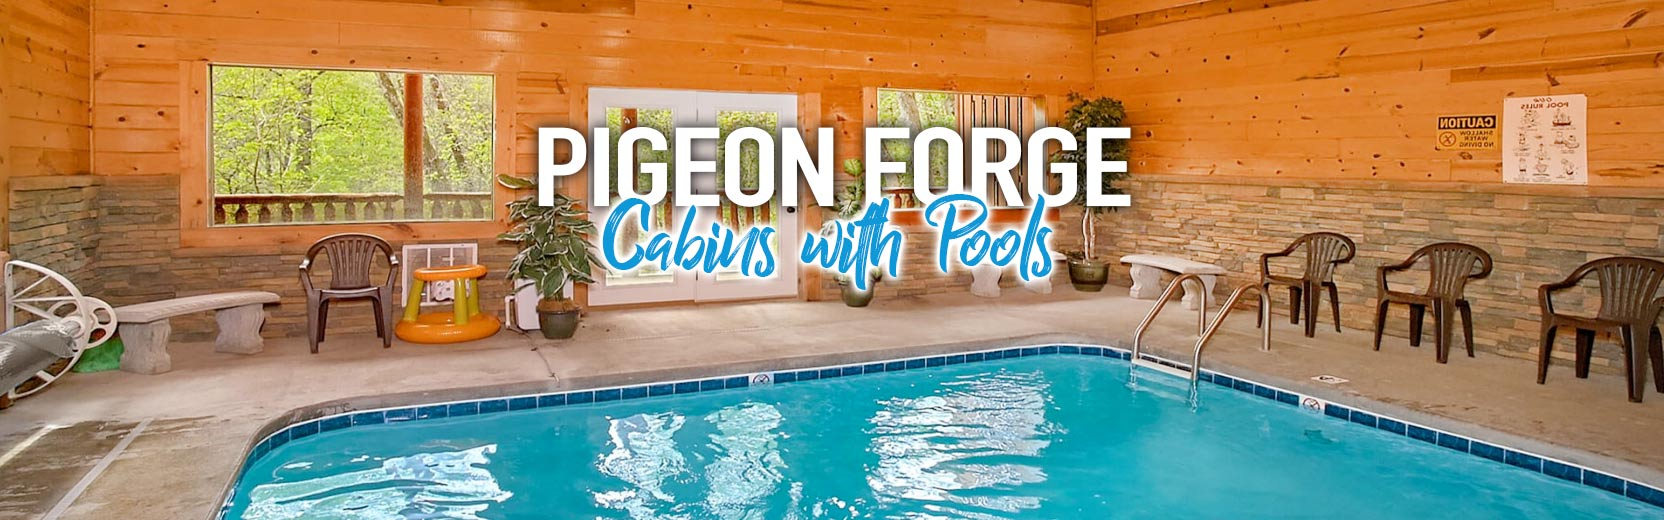 Pigeon Forge Cabins With Pools